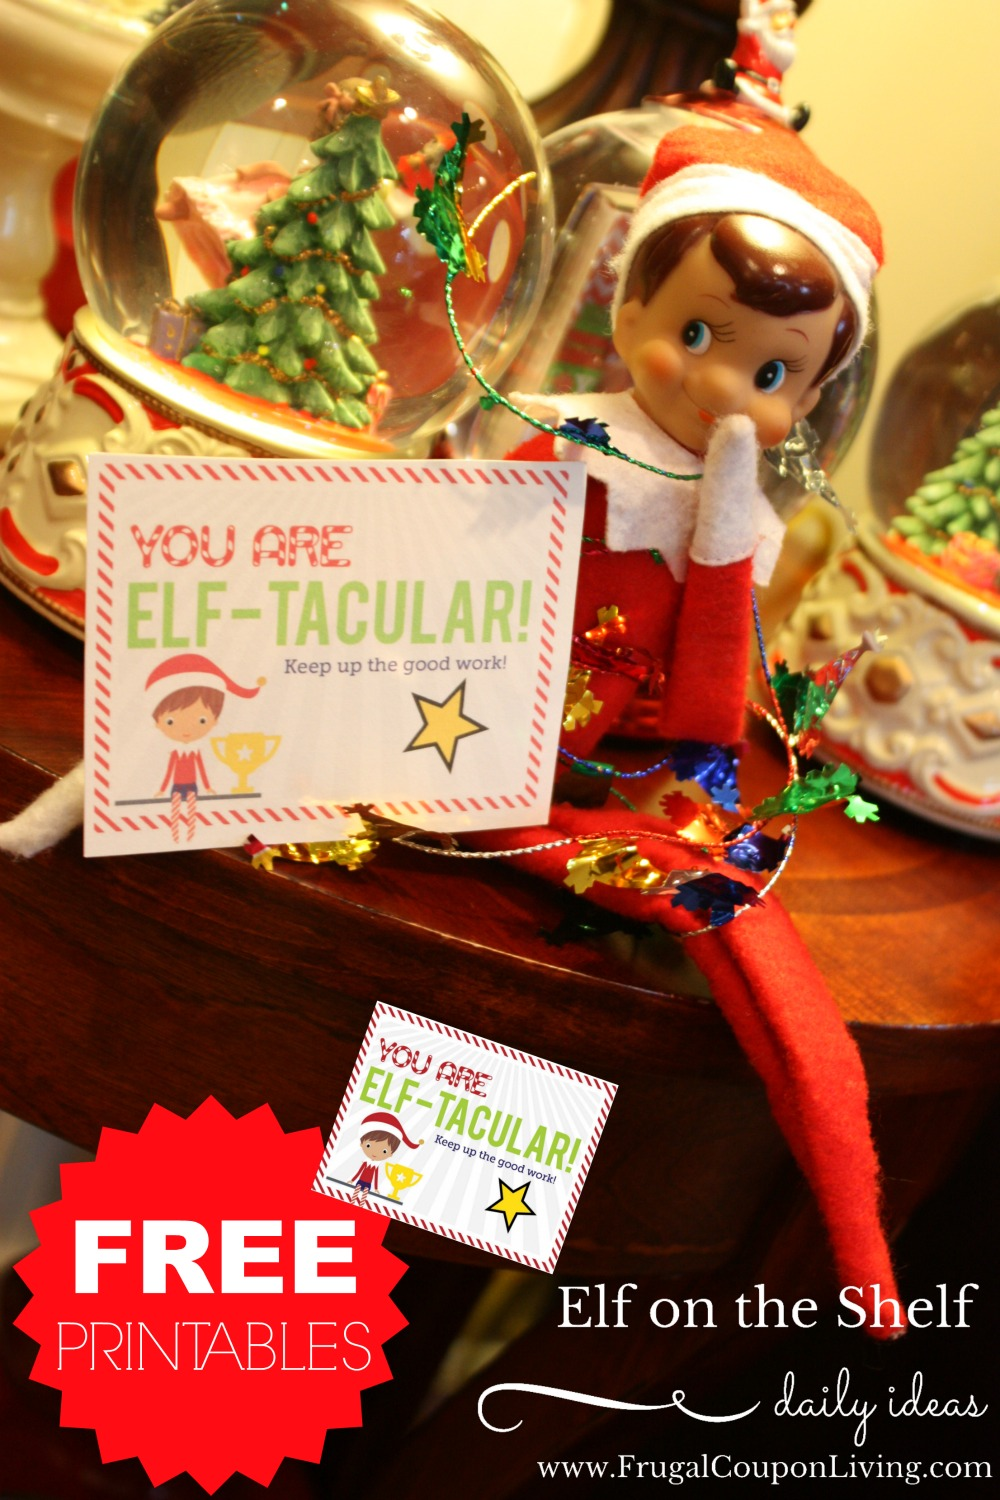 you-are-elf-tacular-elf-on-the-shelf-ideas-printables-frugal-coupon-living